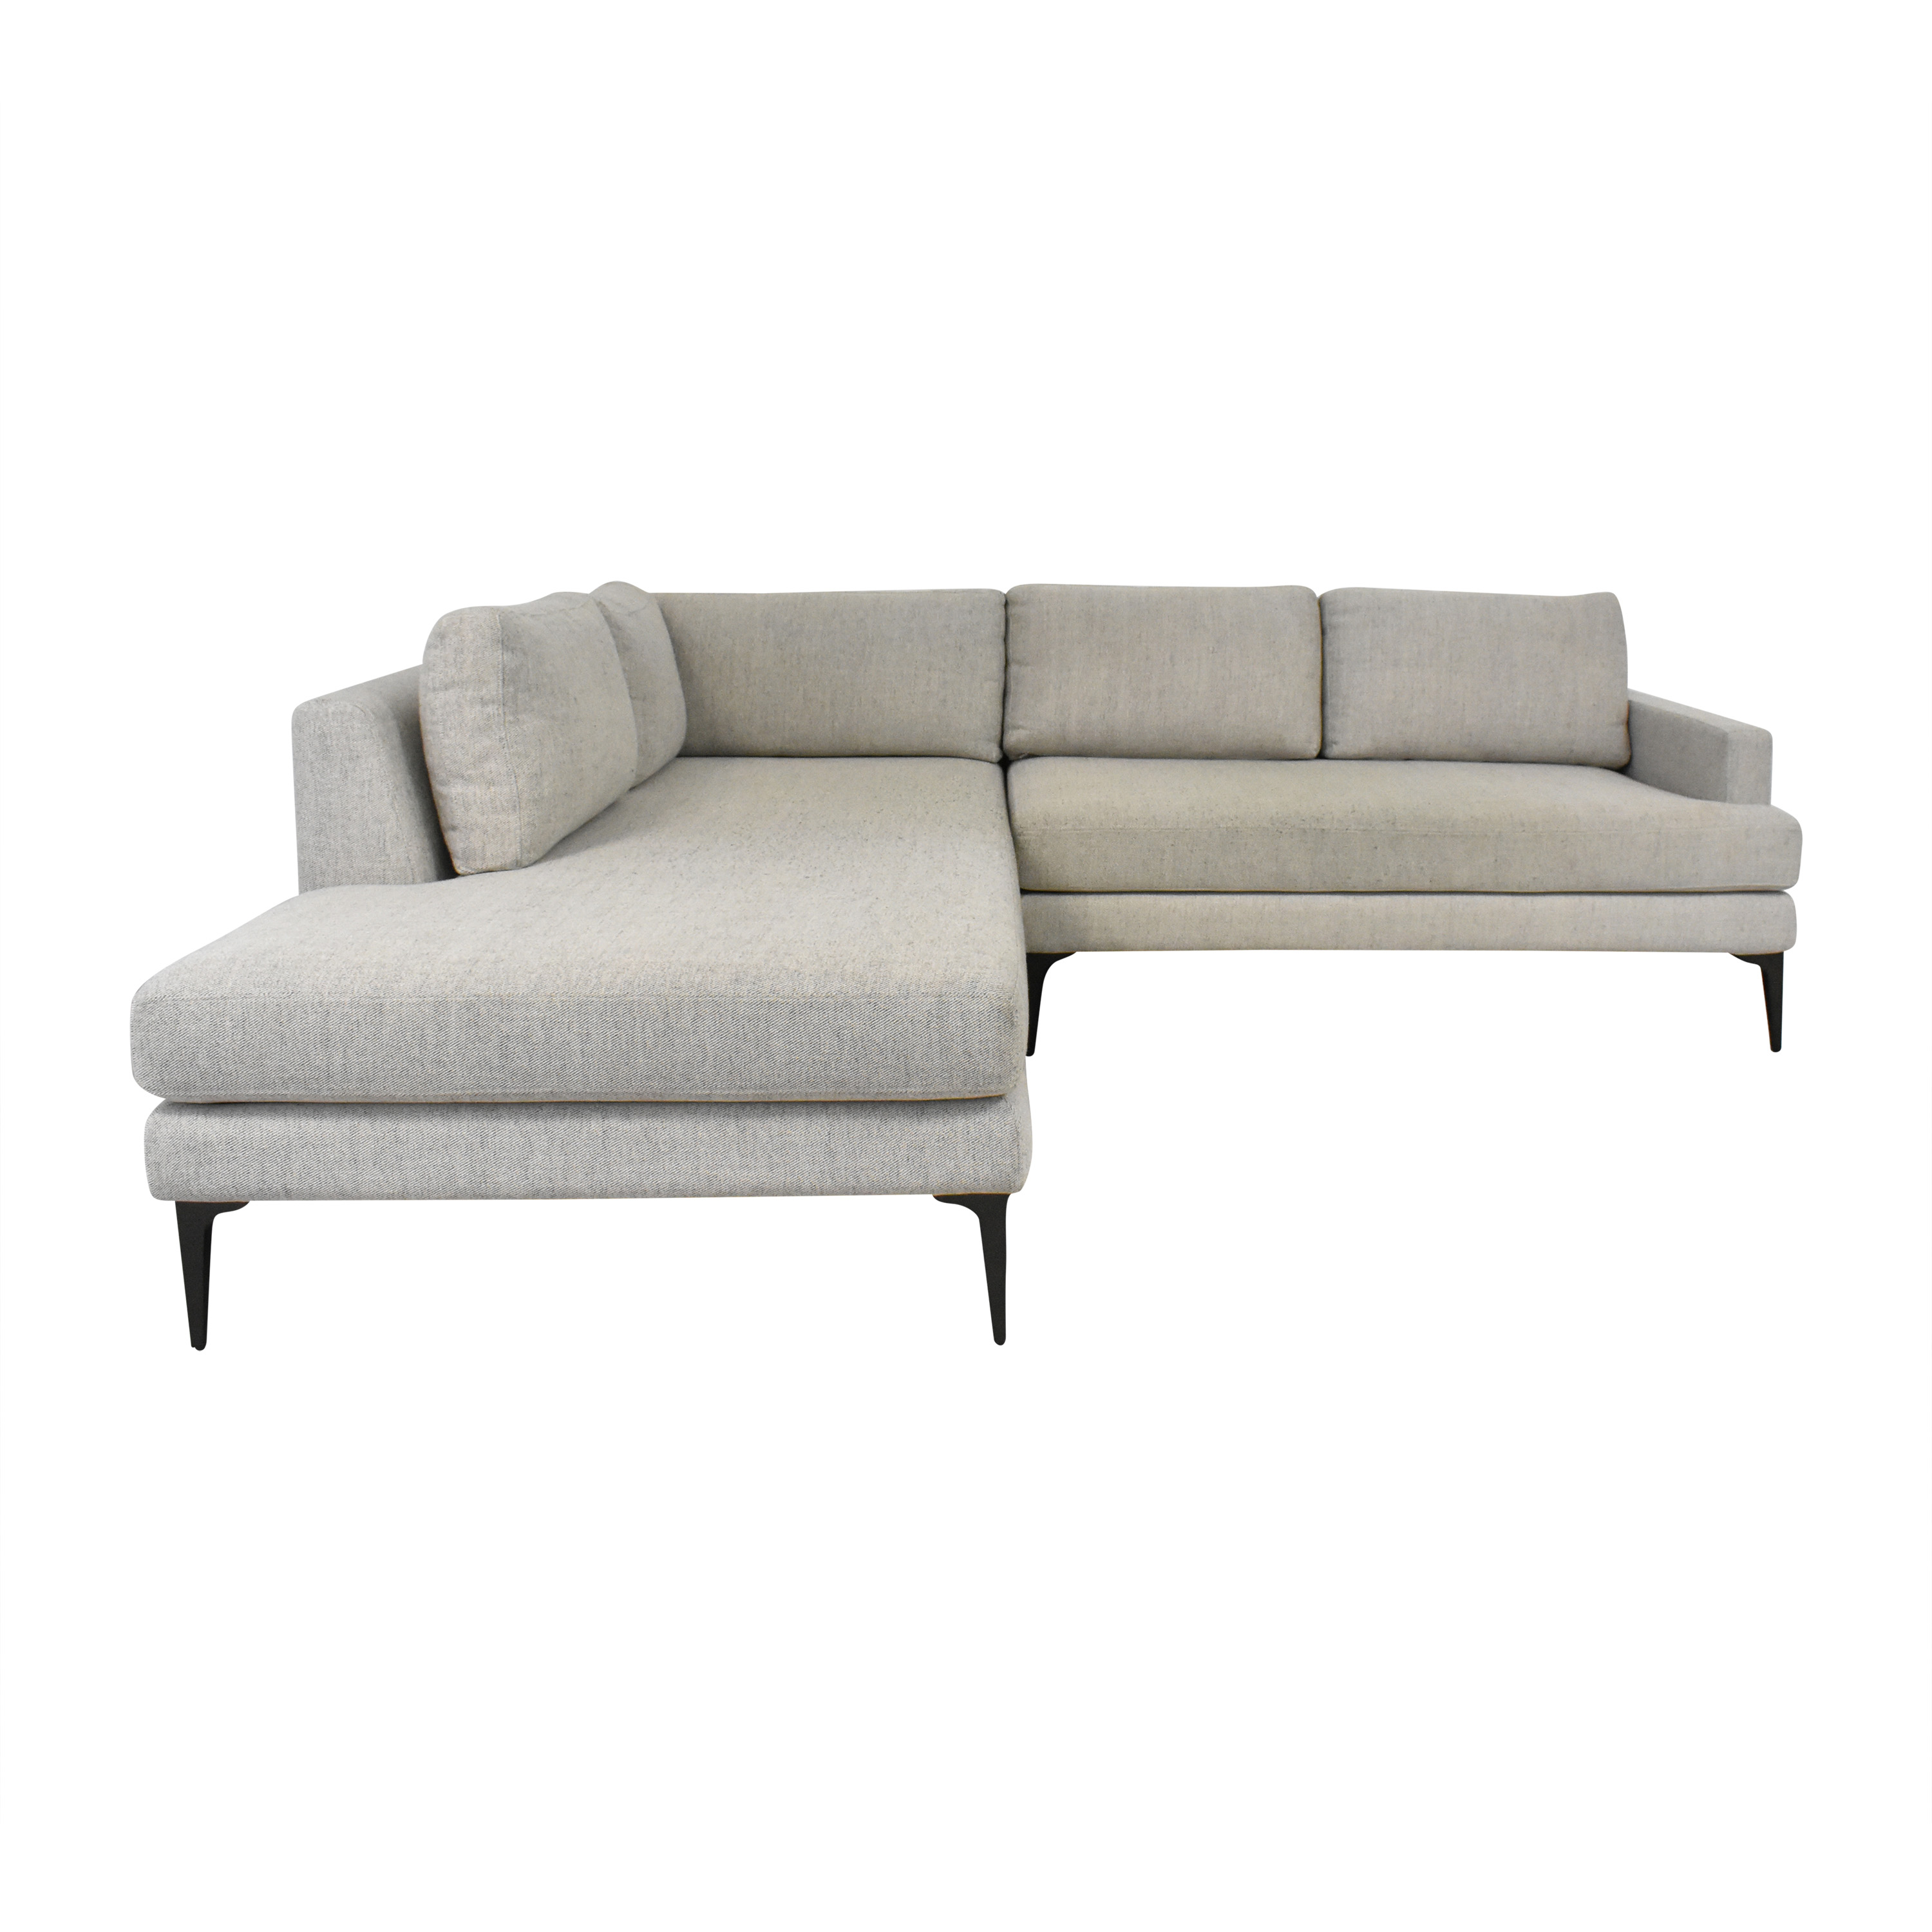 West Elm West Elm Andes Two Piece Terminal Chaise Sectional for sale